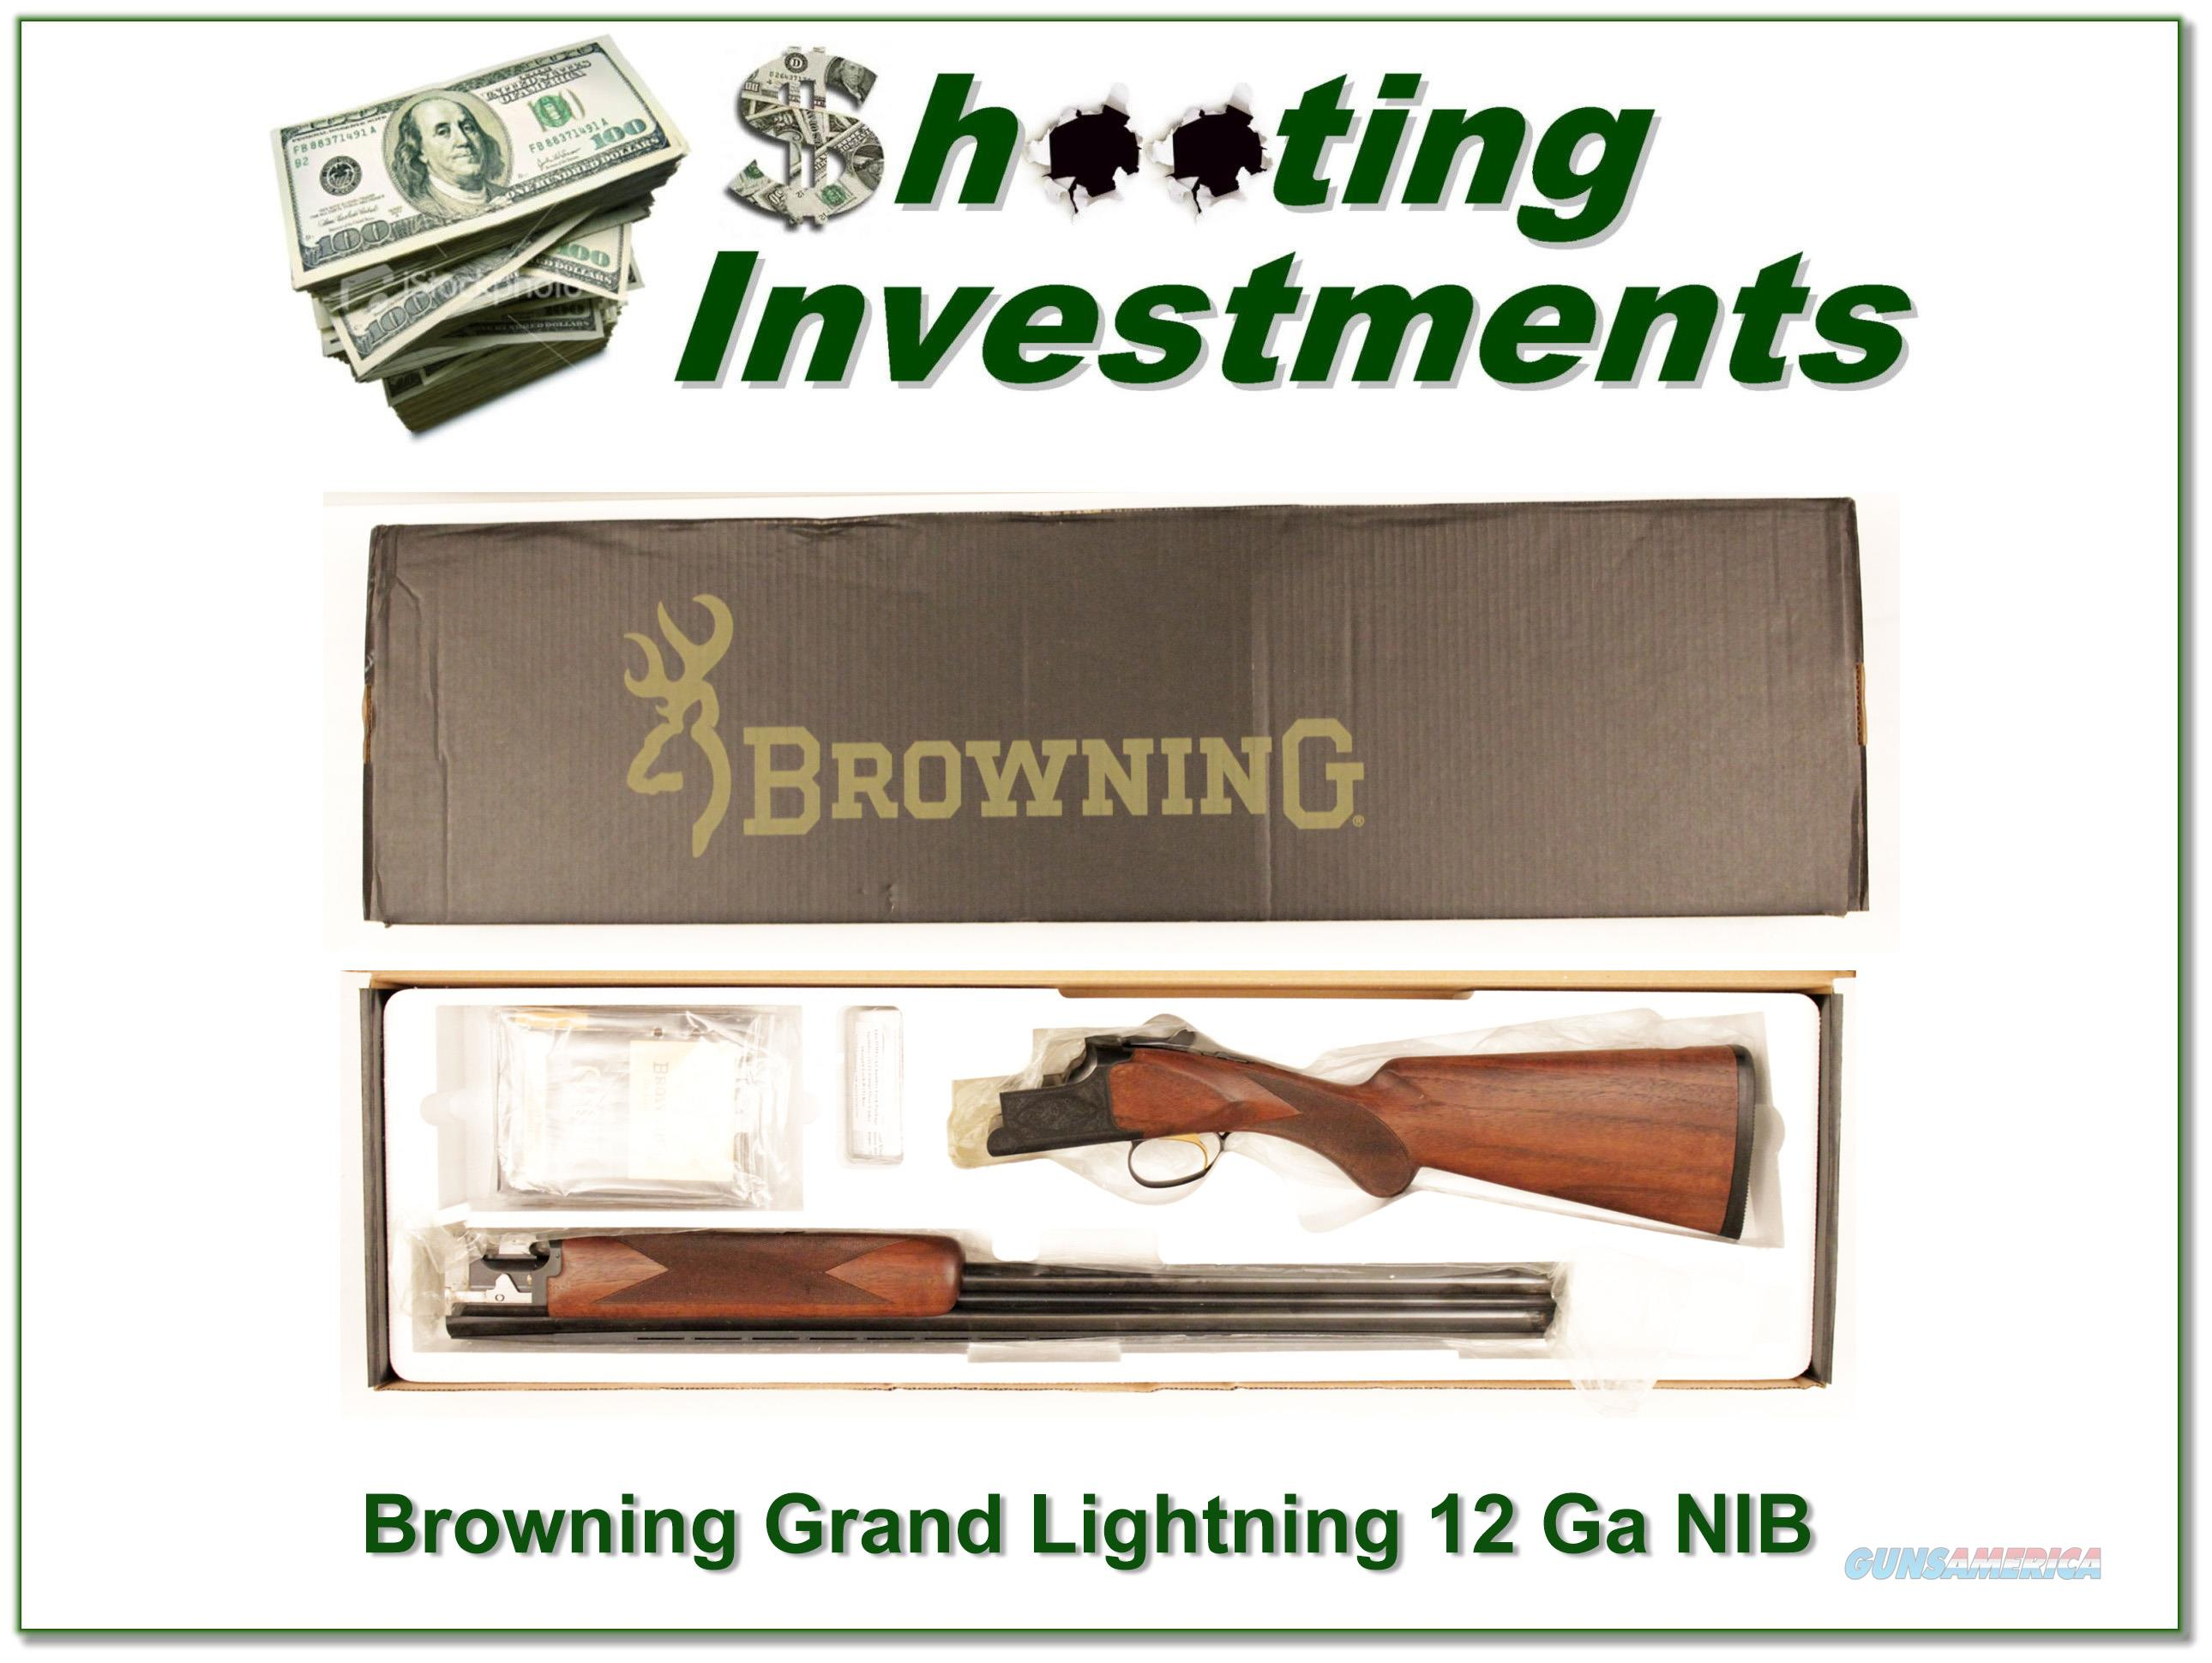 Citori Gran Lightning 12 Gauge 28in NIB!  Guns > Shotguns > Browning Shotguns > Over Unders > Citori > Hunting